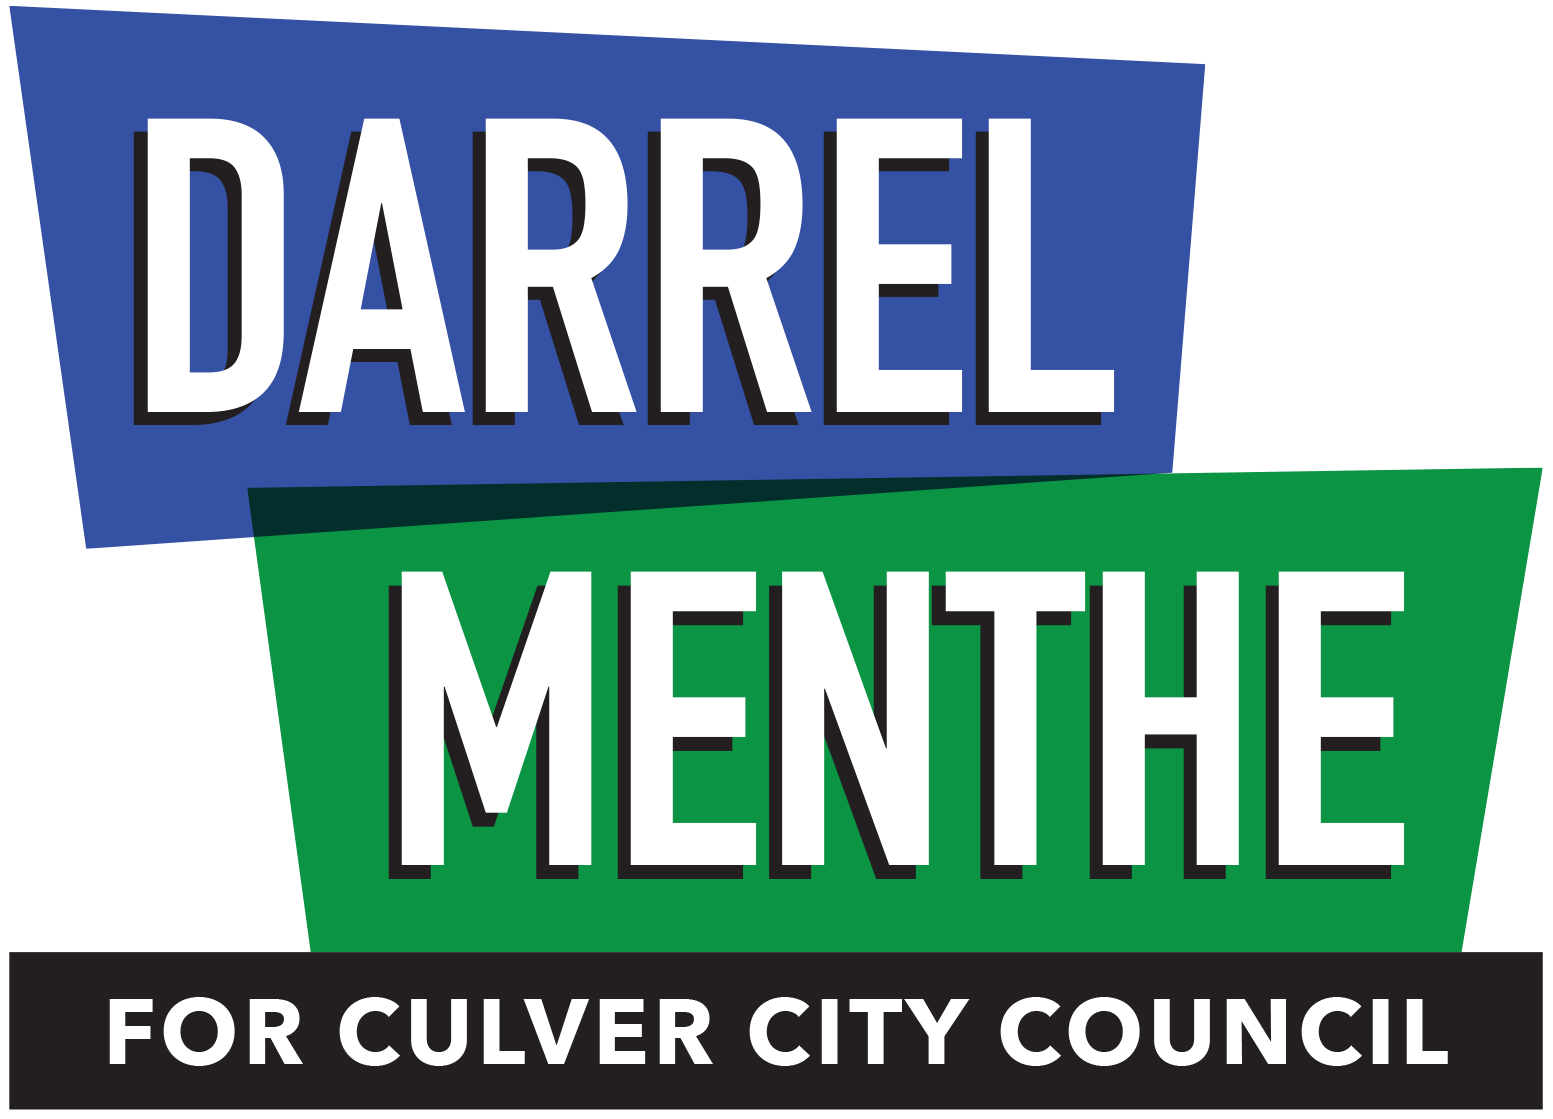 Darrel Menthe for Culver City Council